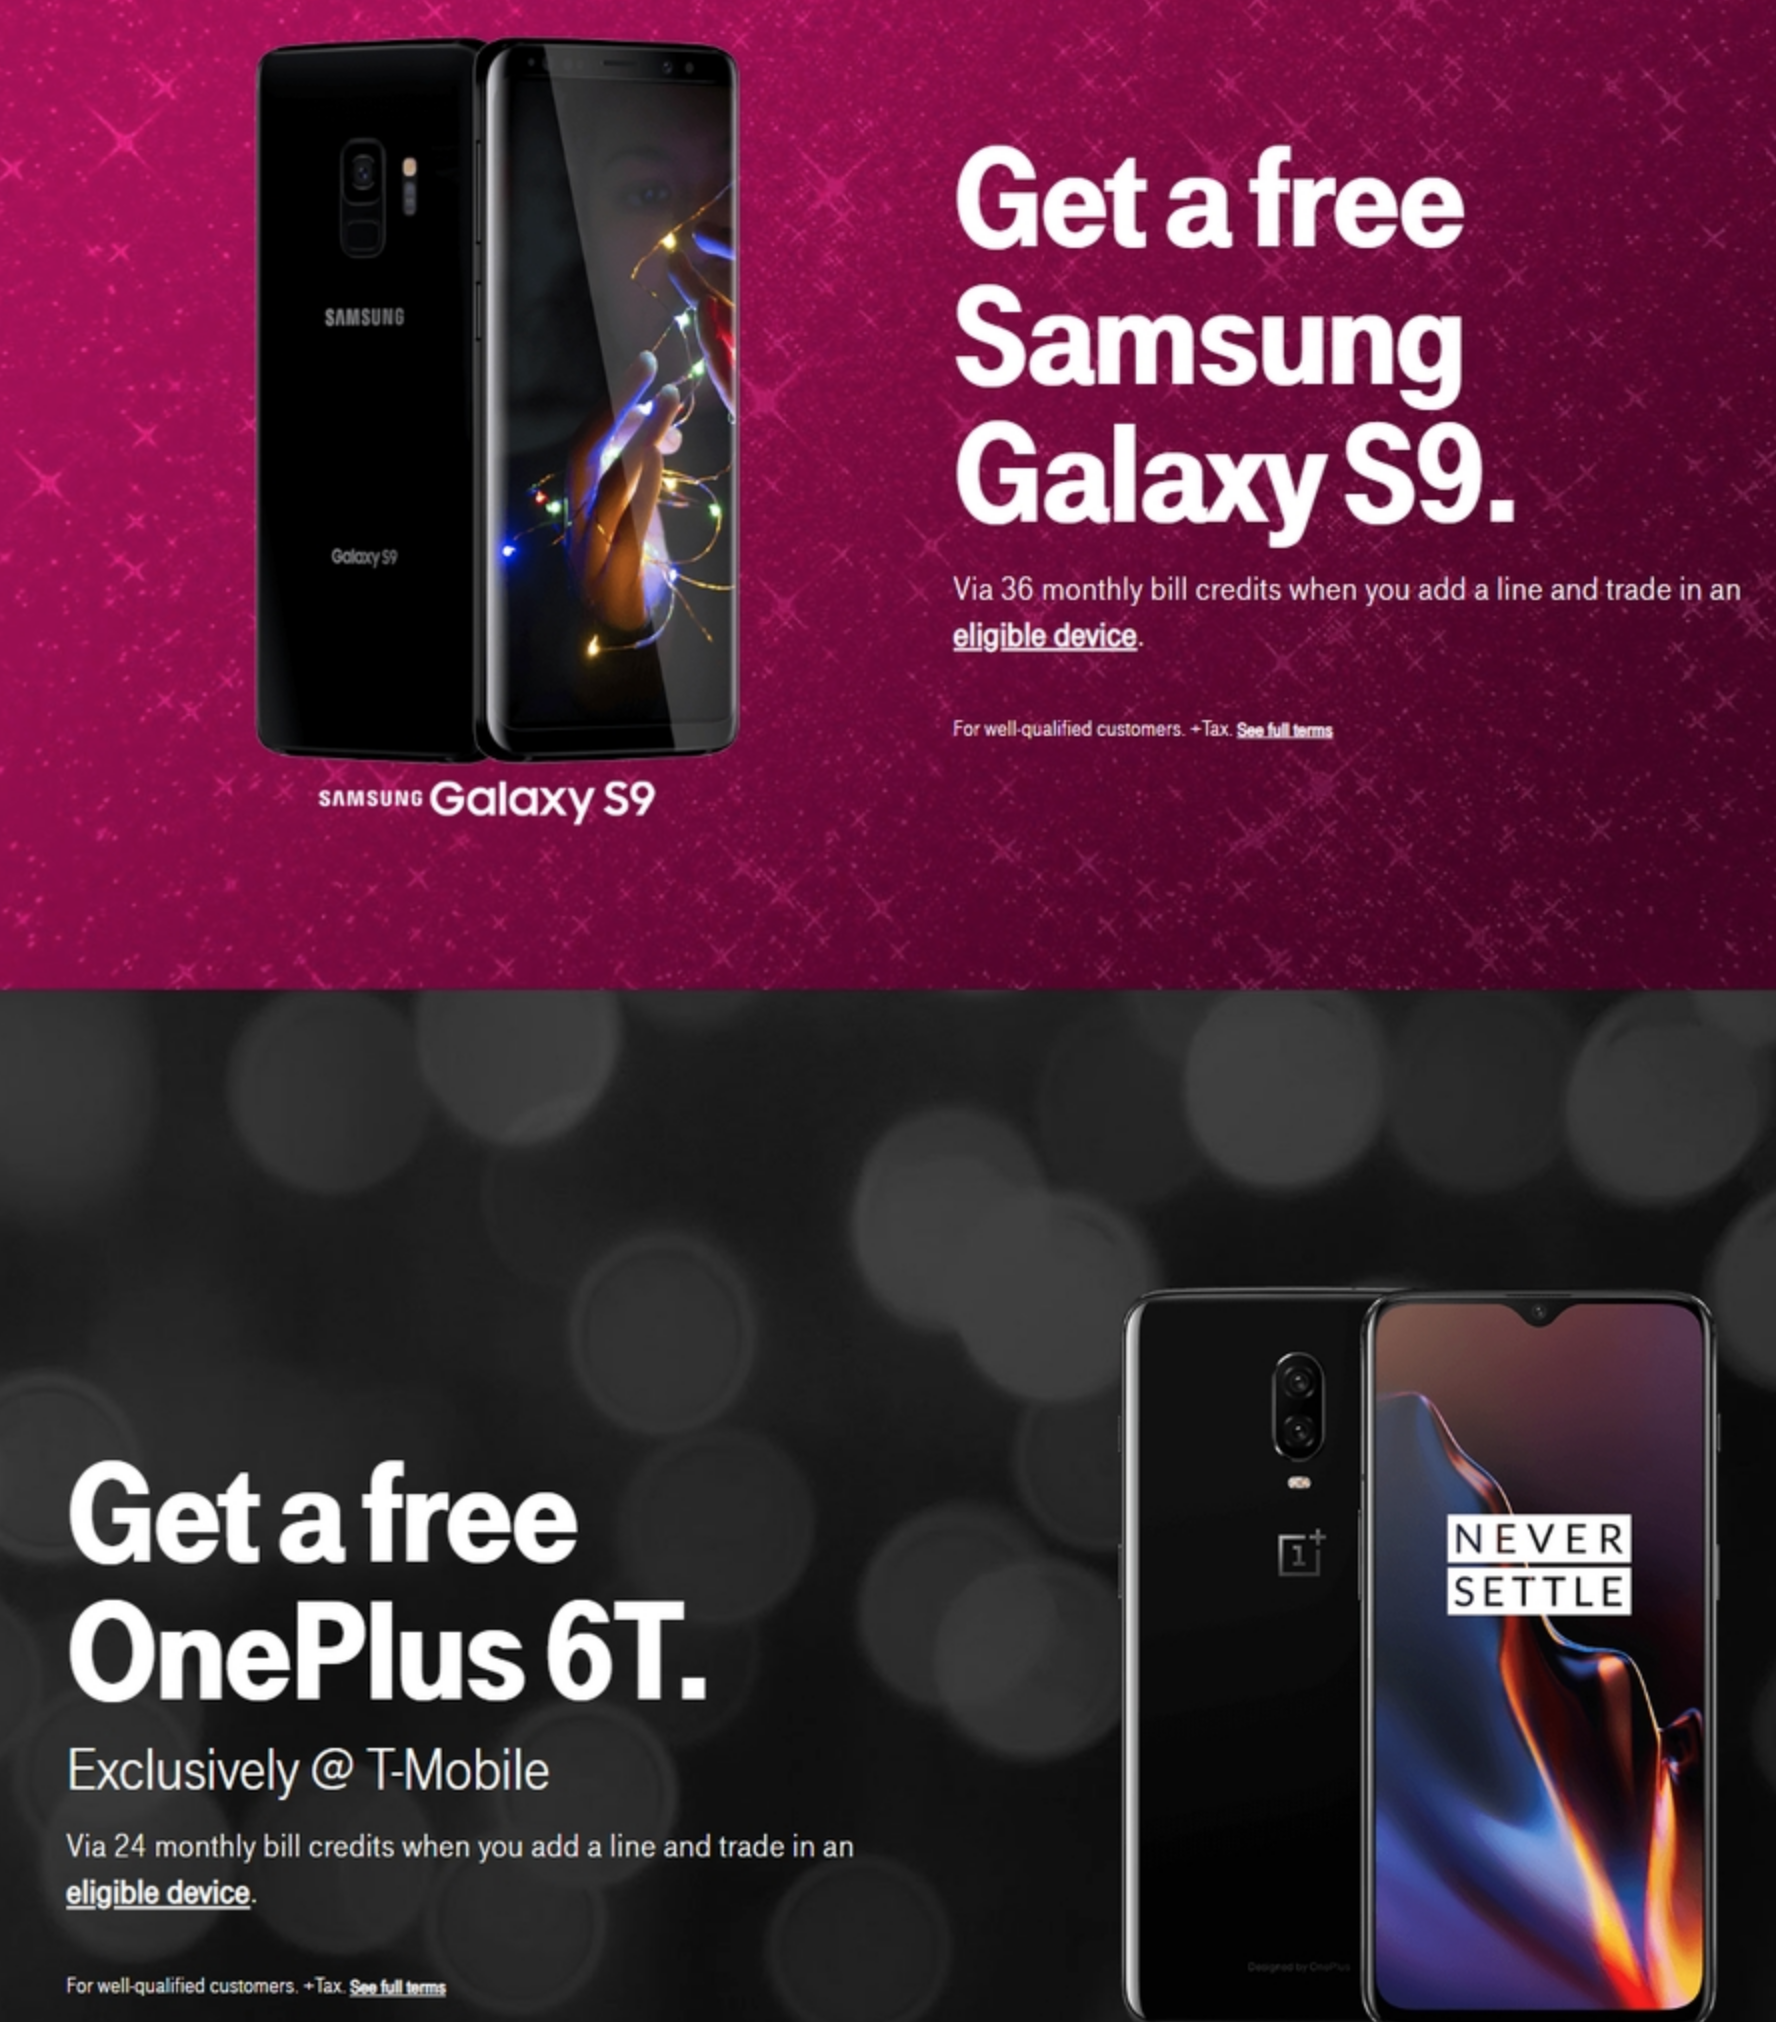 T Mobile Black Friday Ad Iphone Xr Apple Watch More 9to5toys